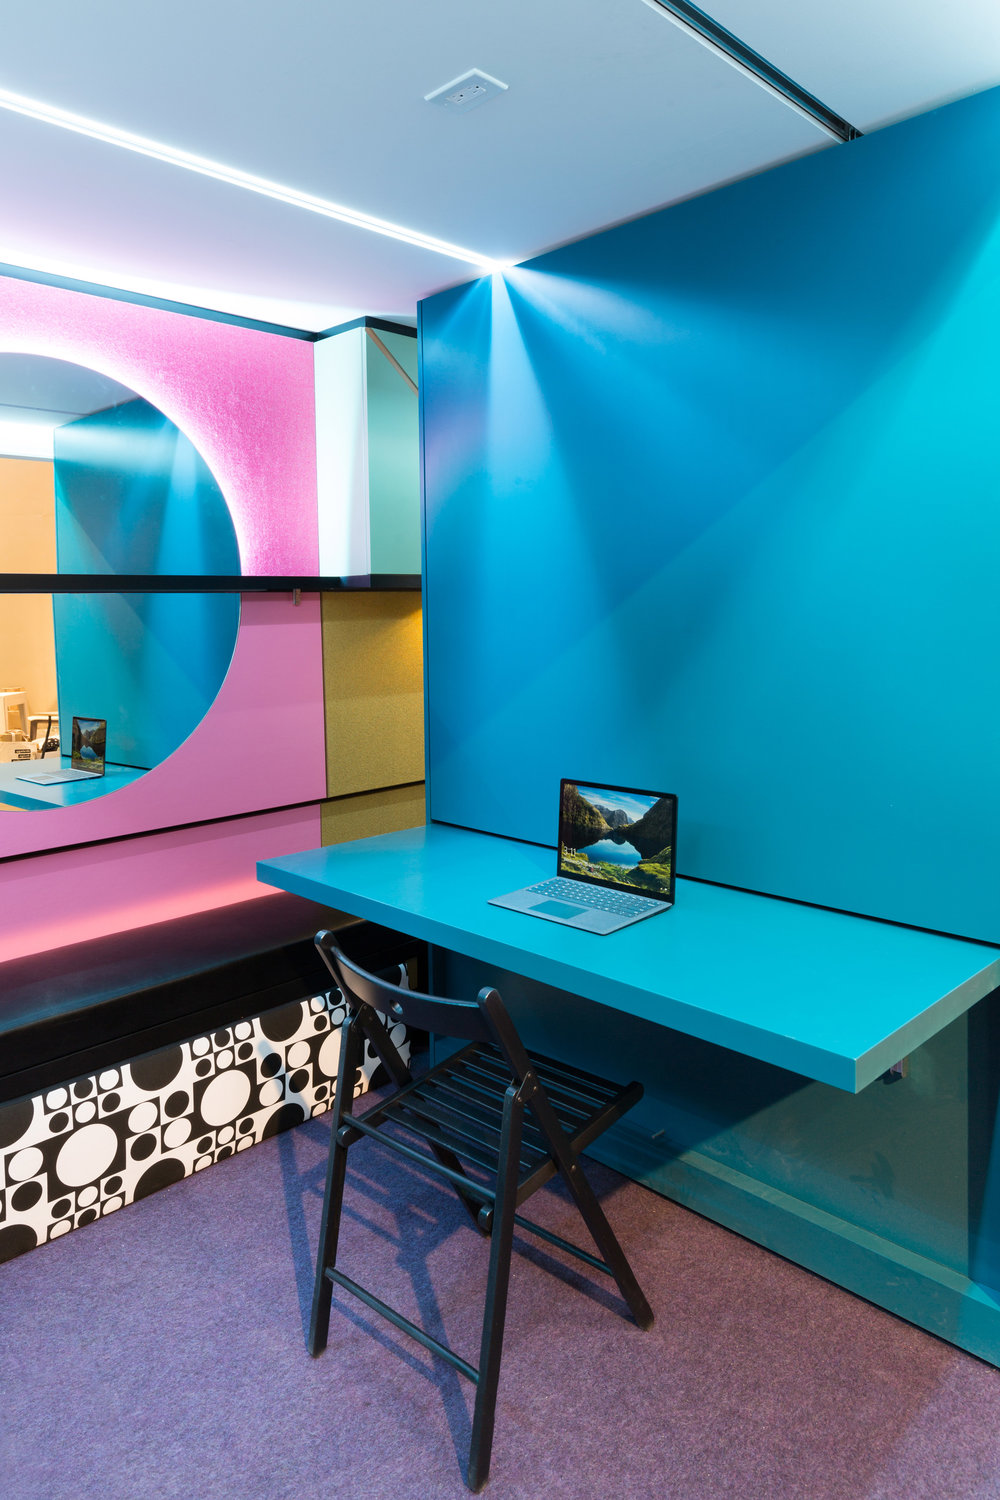 Featuring pink walls and hues of blue, the WRKkit office space is to my exact tastes in design and they definitely haven't saved on the detail. The electrical ports also move as the space does which could make for very ideal and convenient socket powering when needed.